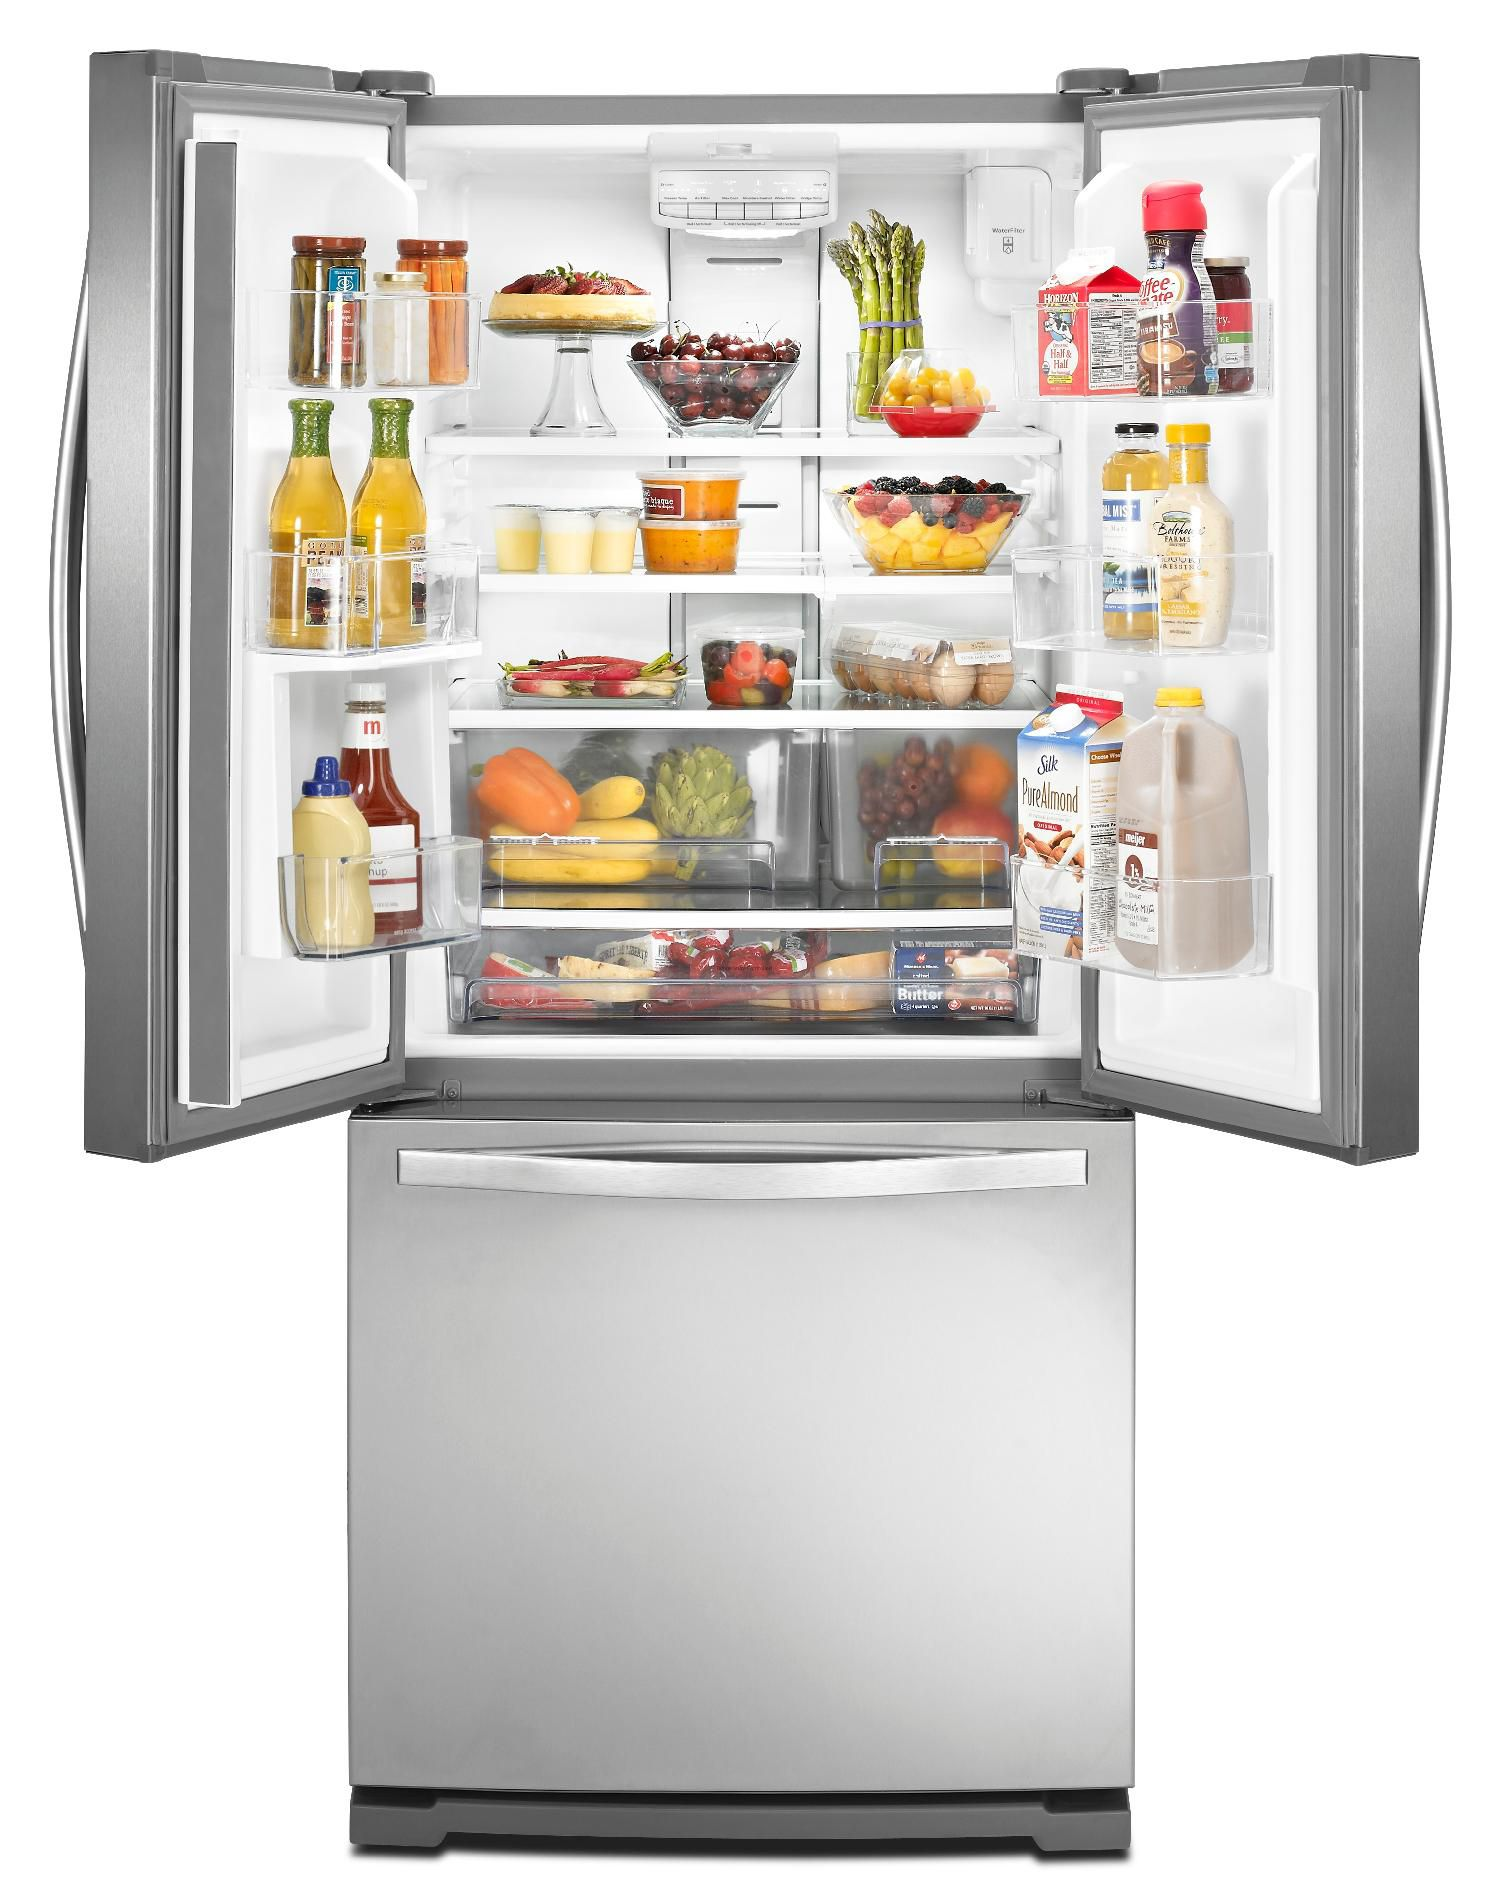 Whirlpool 20 cu. ft. French Door Refrigerator w/ 30 in. Wide Footprint - Stainless Steel